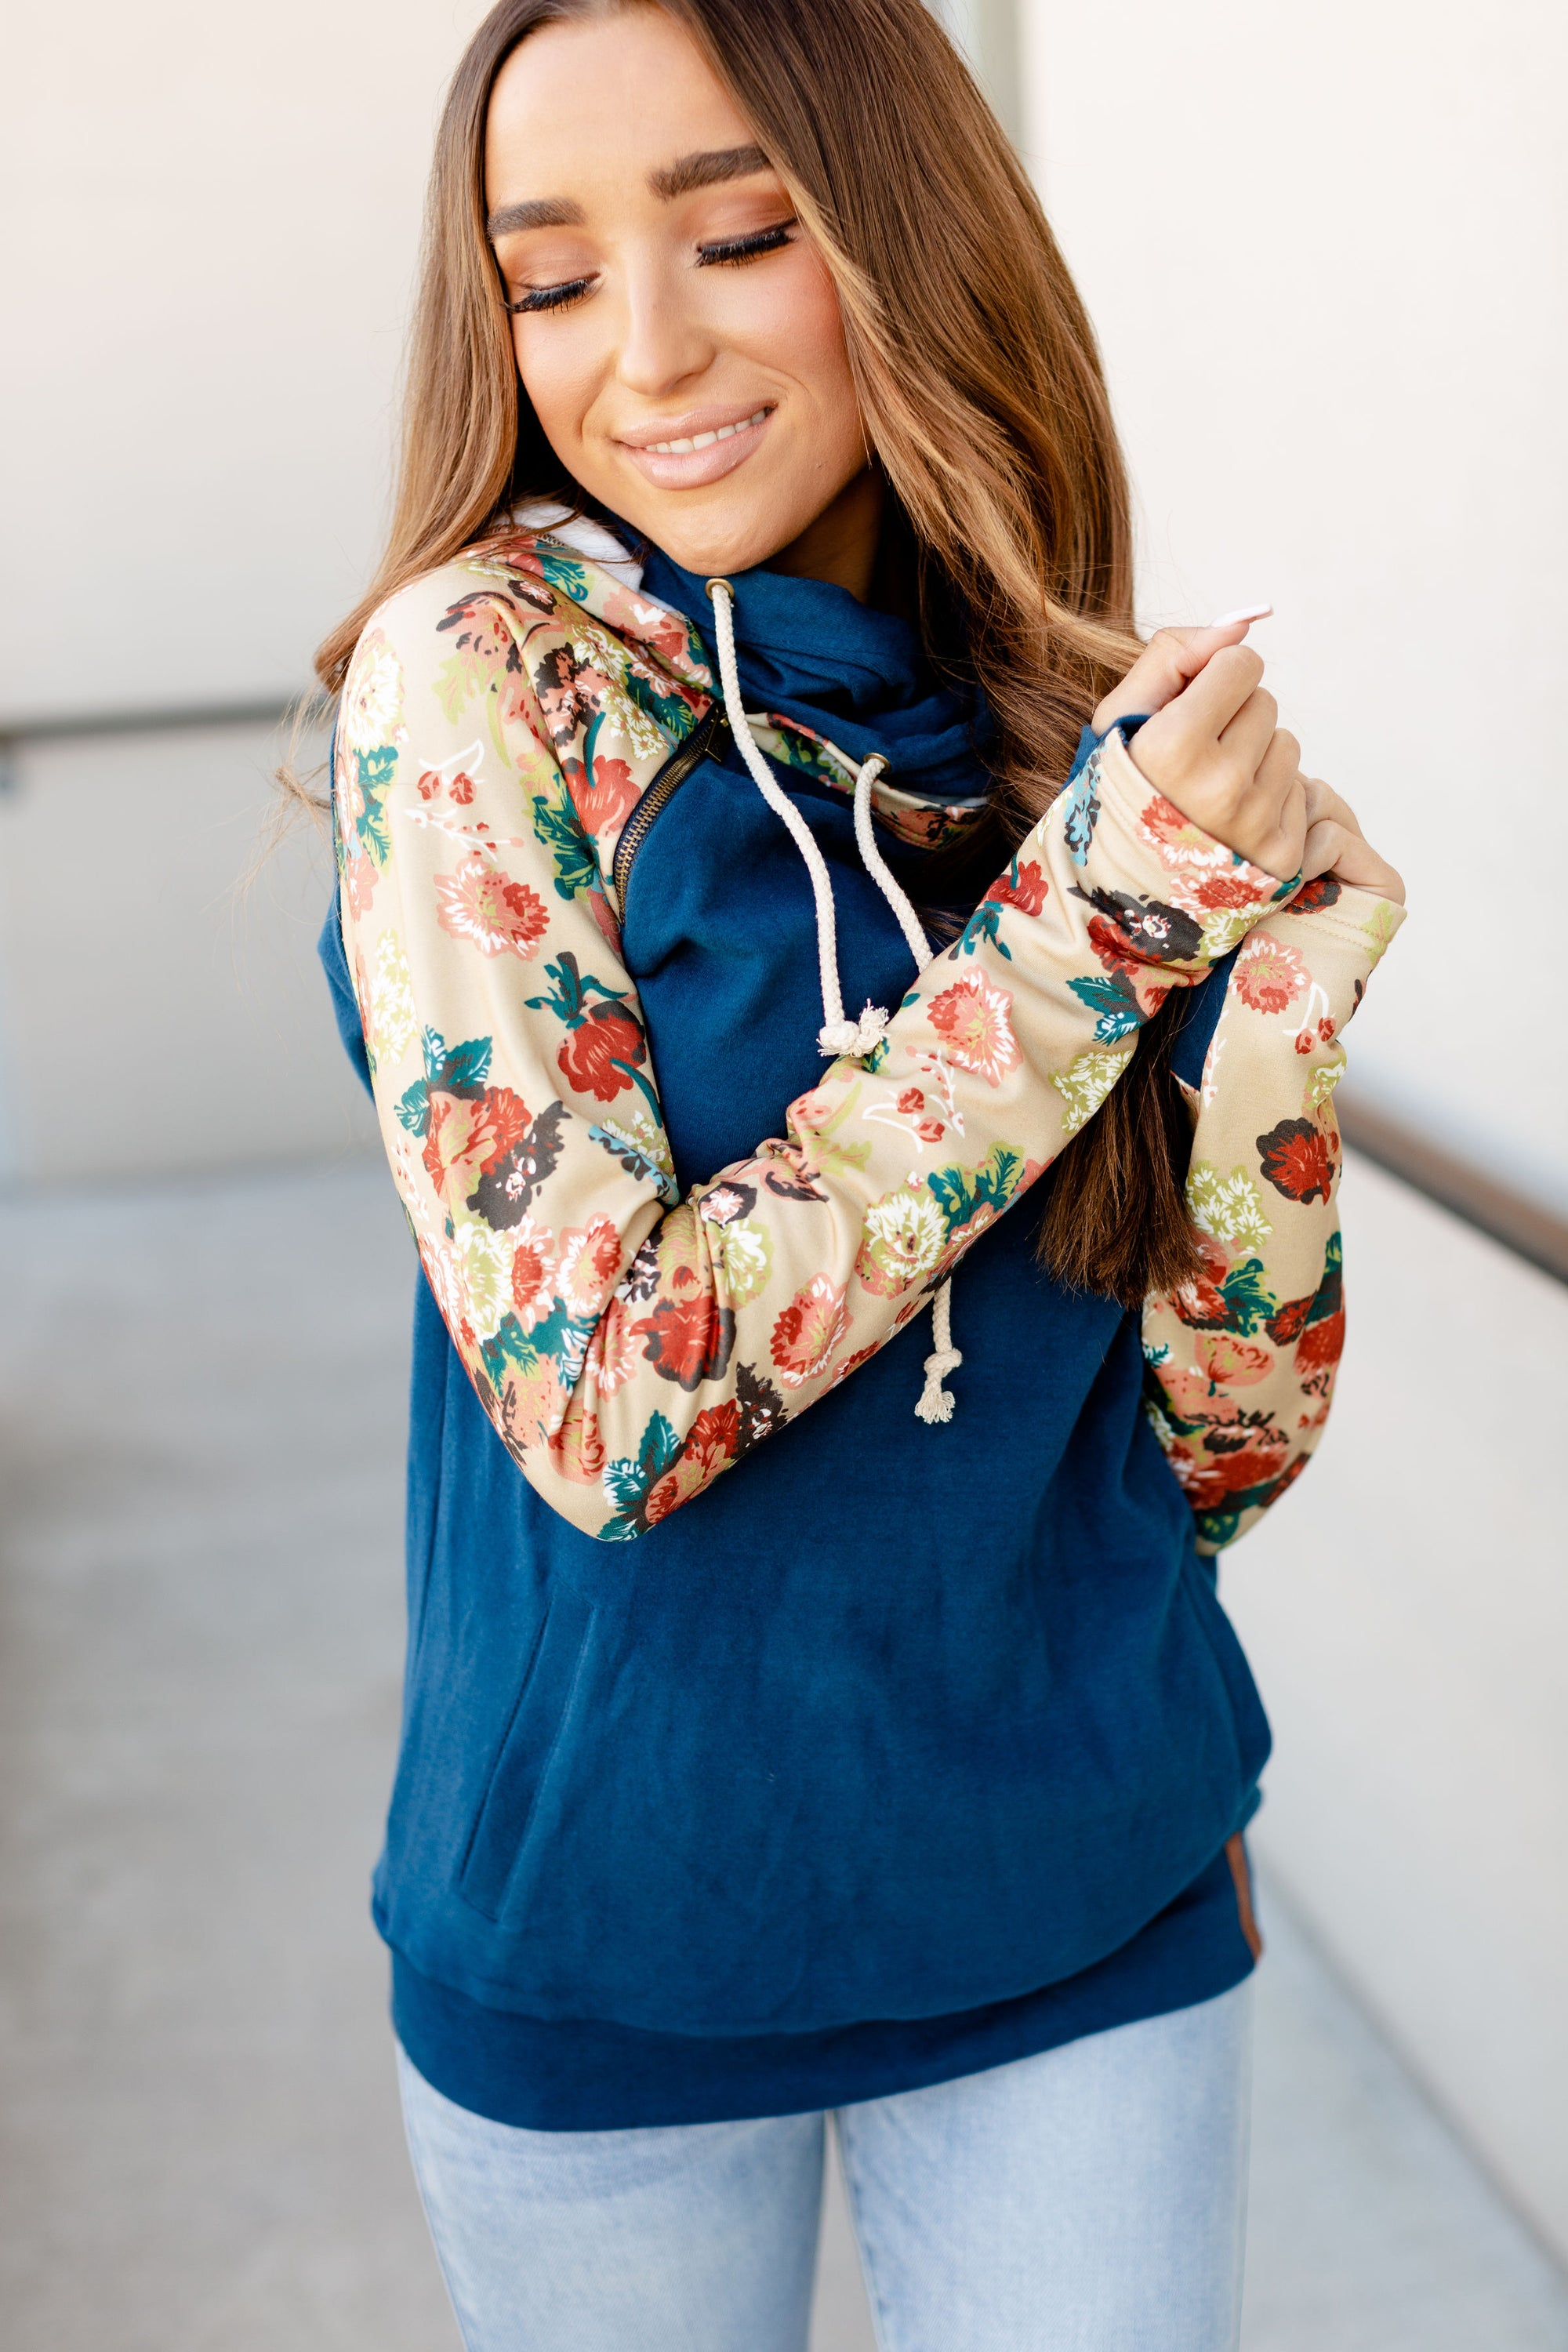 Ampersand Avenue DoubleHood Sweatshirt - Late Bloomer